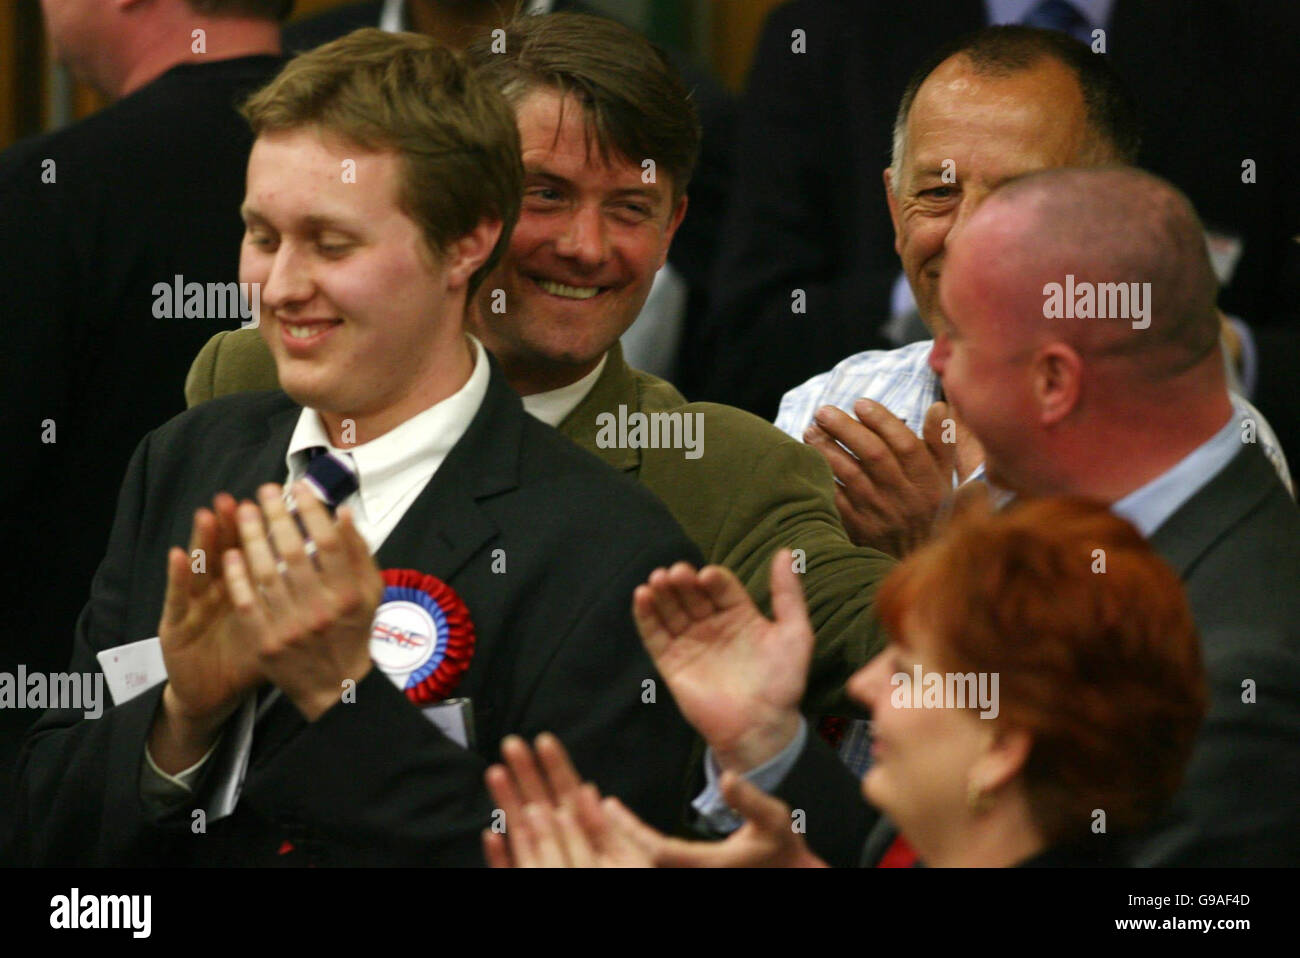 The British National Part's London organiser Richard Barnbrook (second from left) jokes with BNP candidates - Stock Image